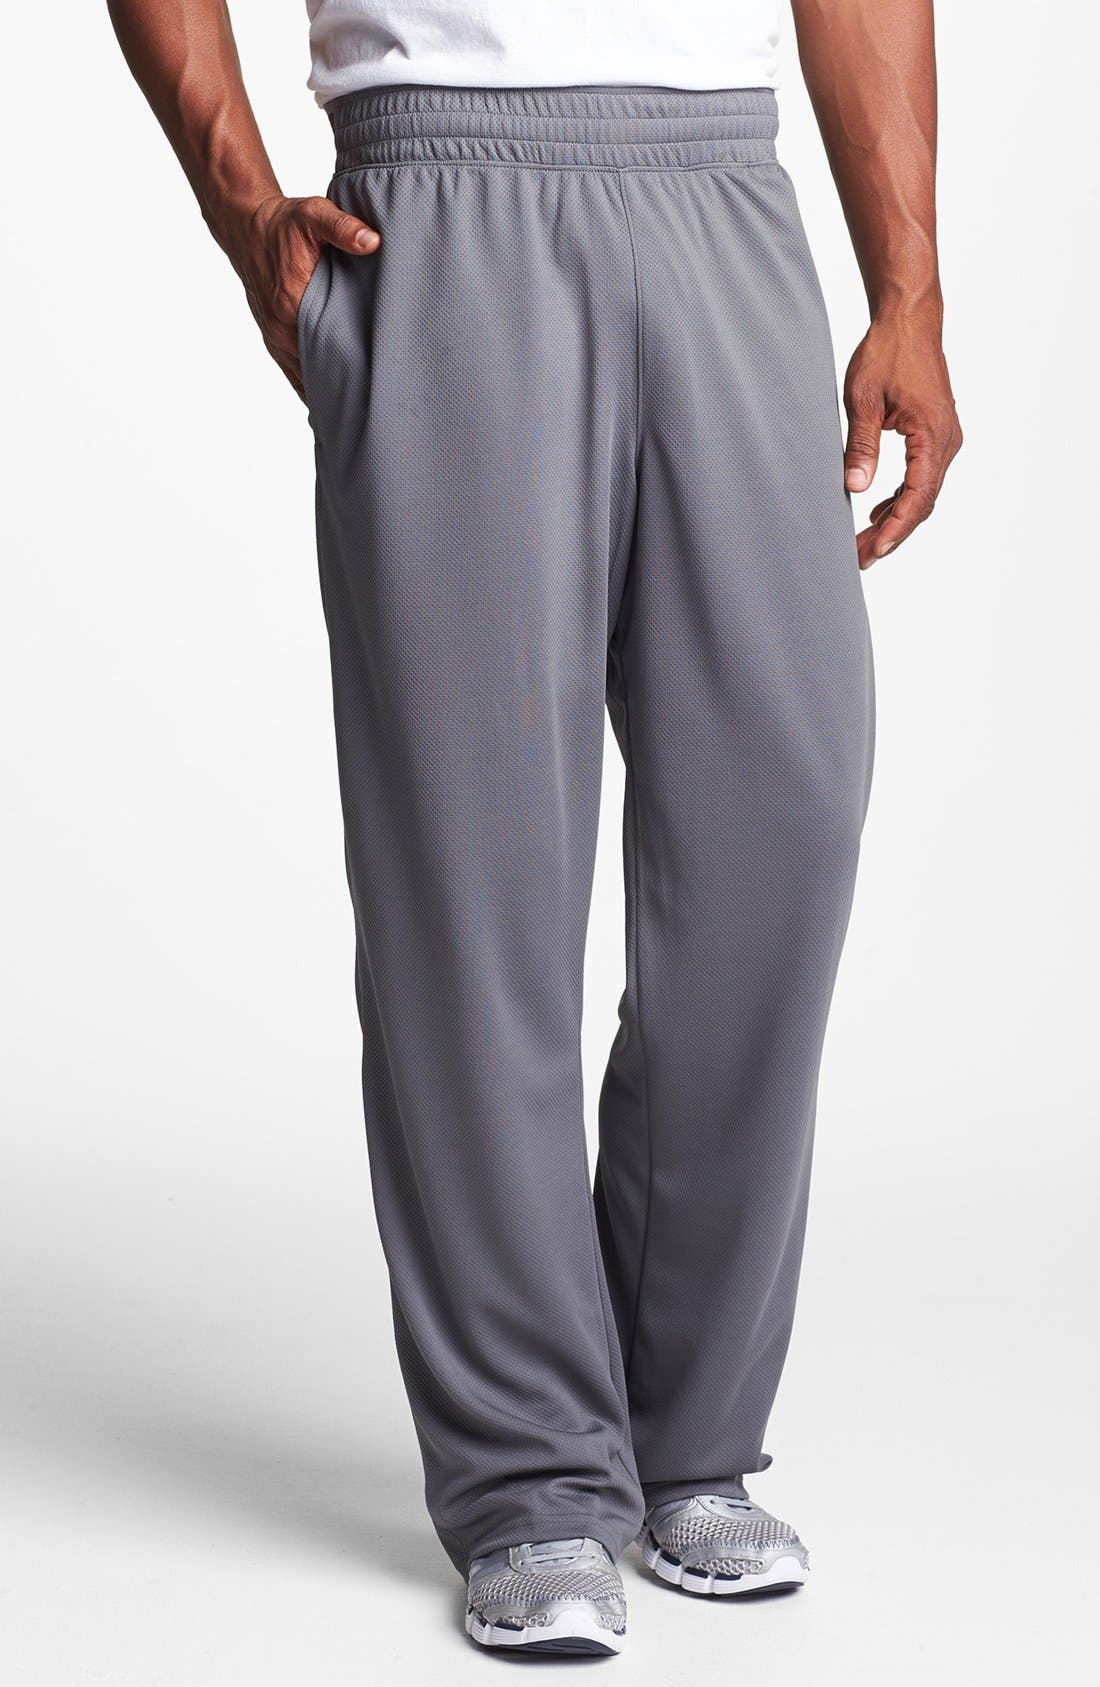 Main Image - Under Armour 'Reflex' Pants